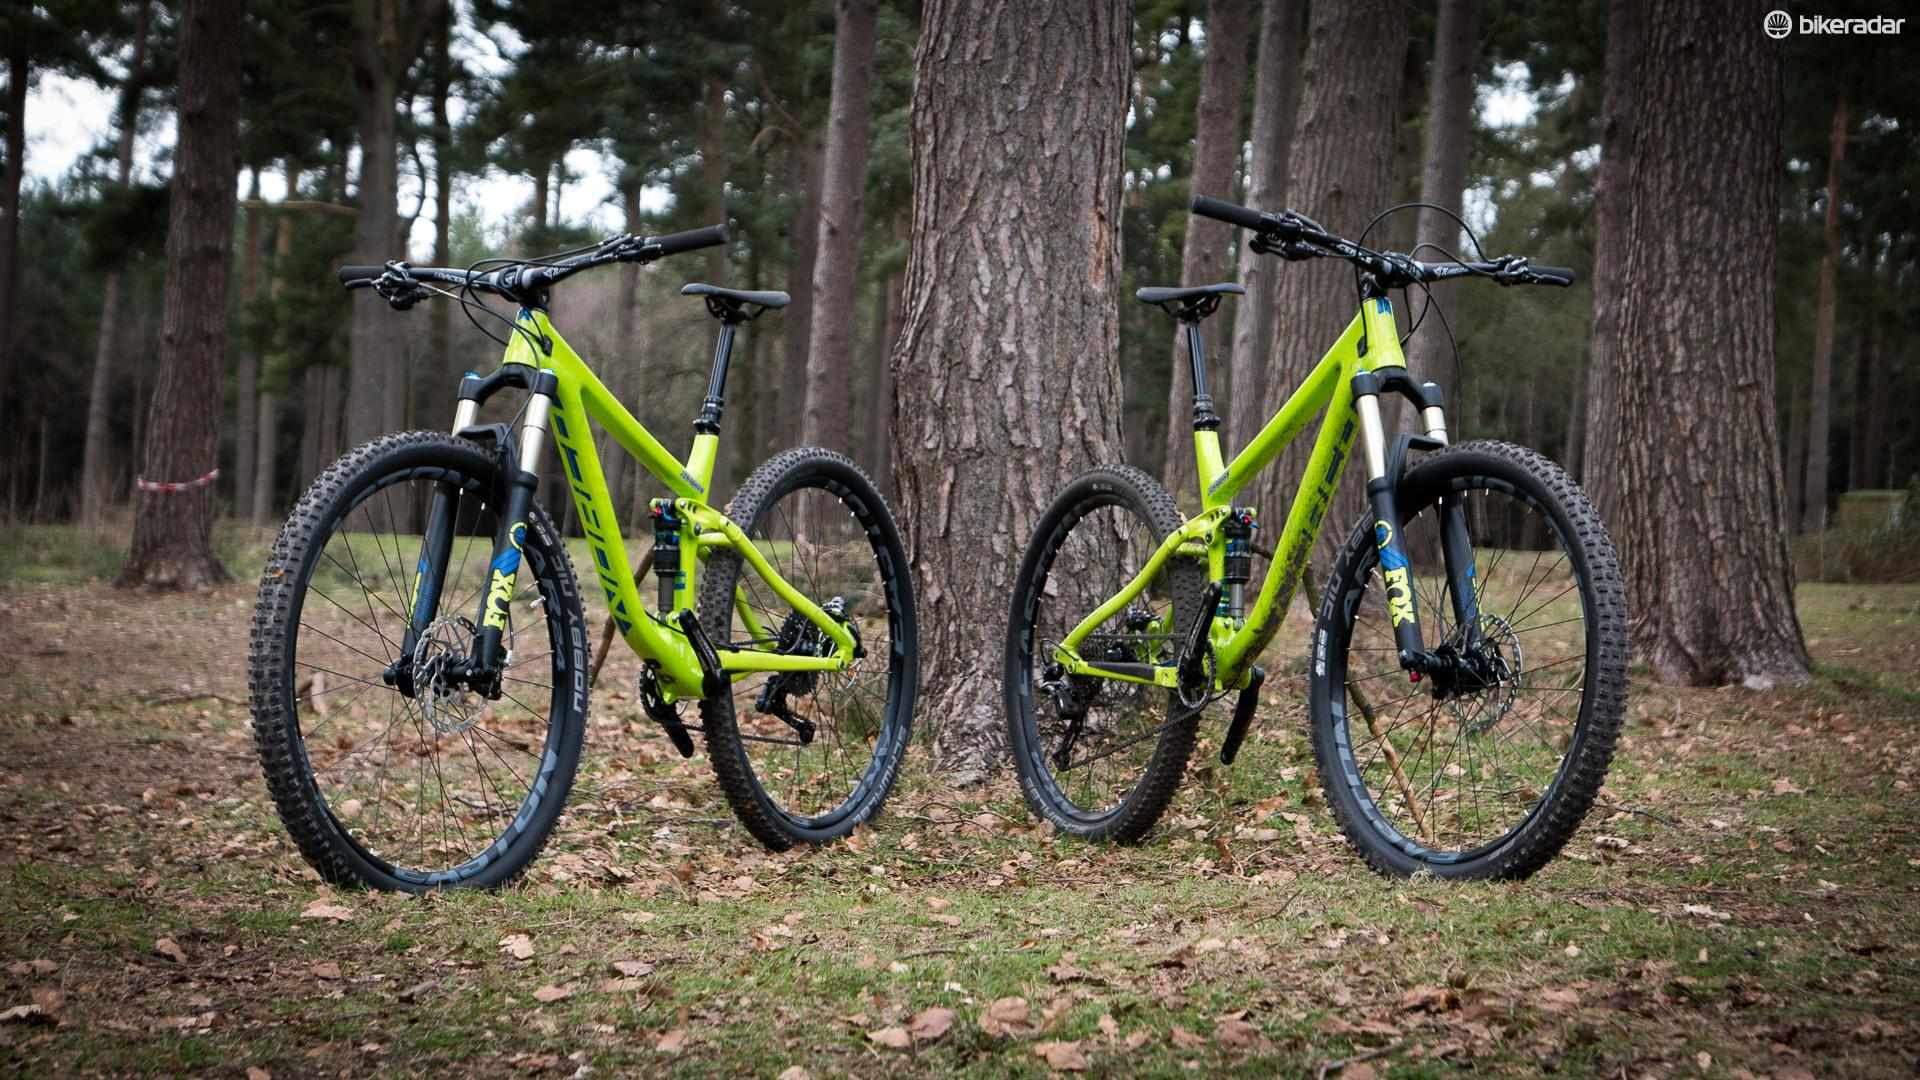 This isn't two bikes you're looking at – it's one, but with two different wheel sizes